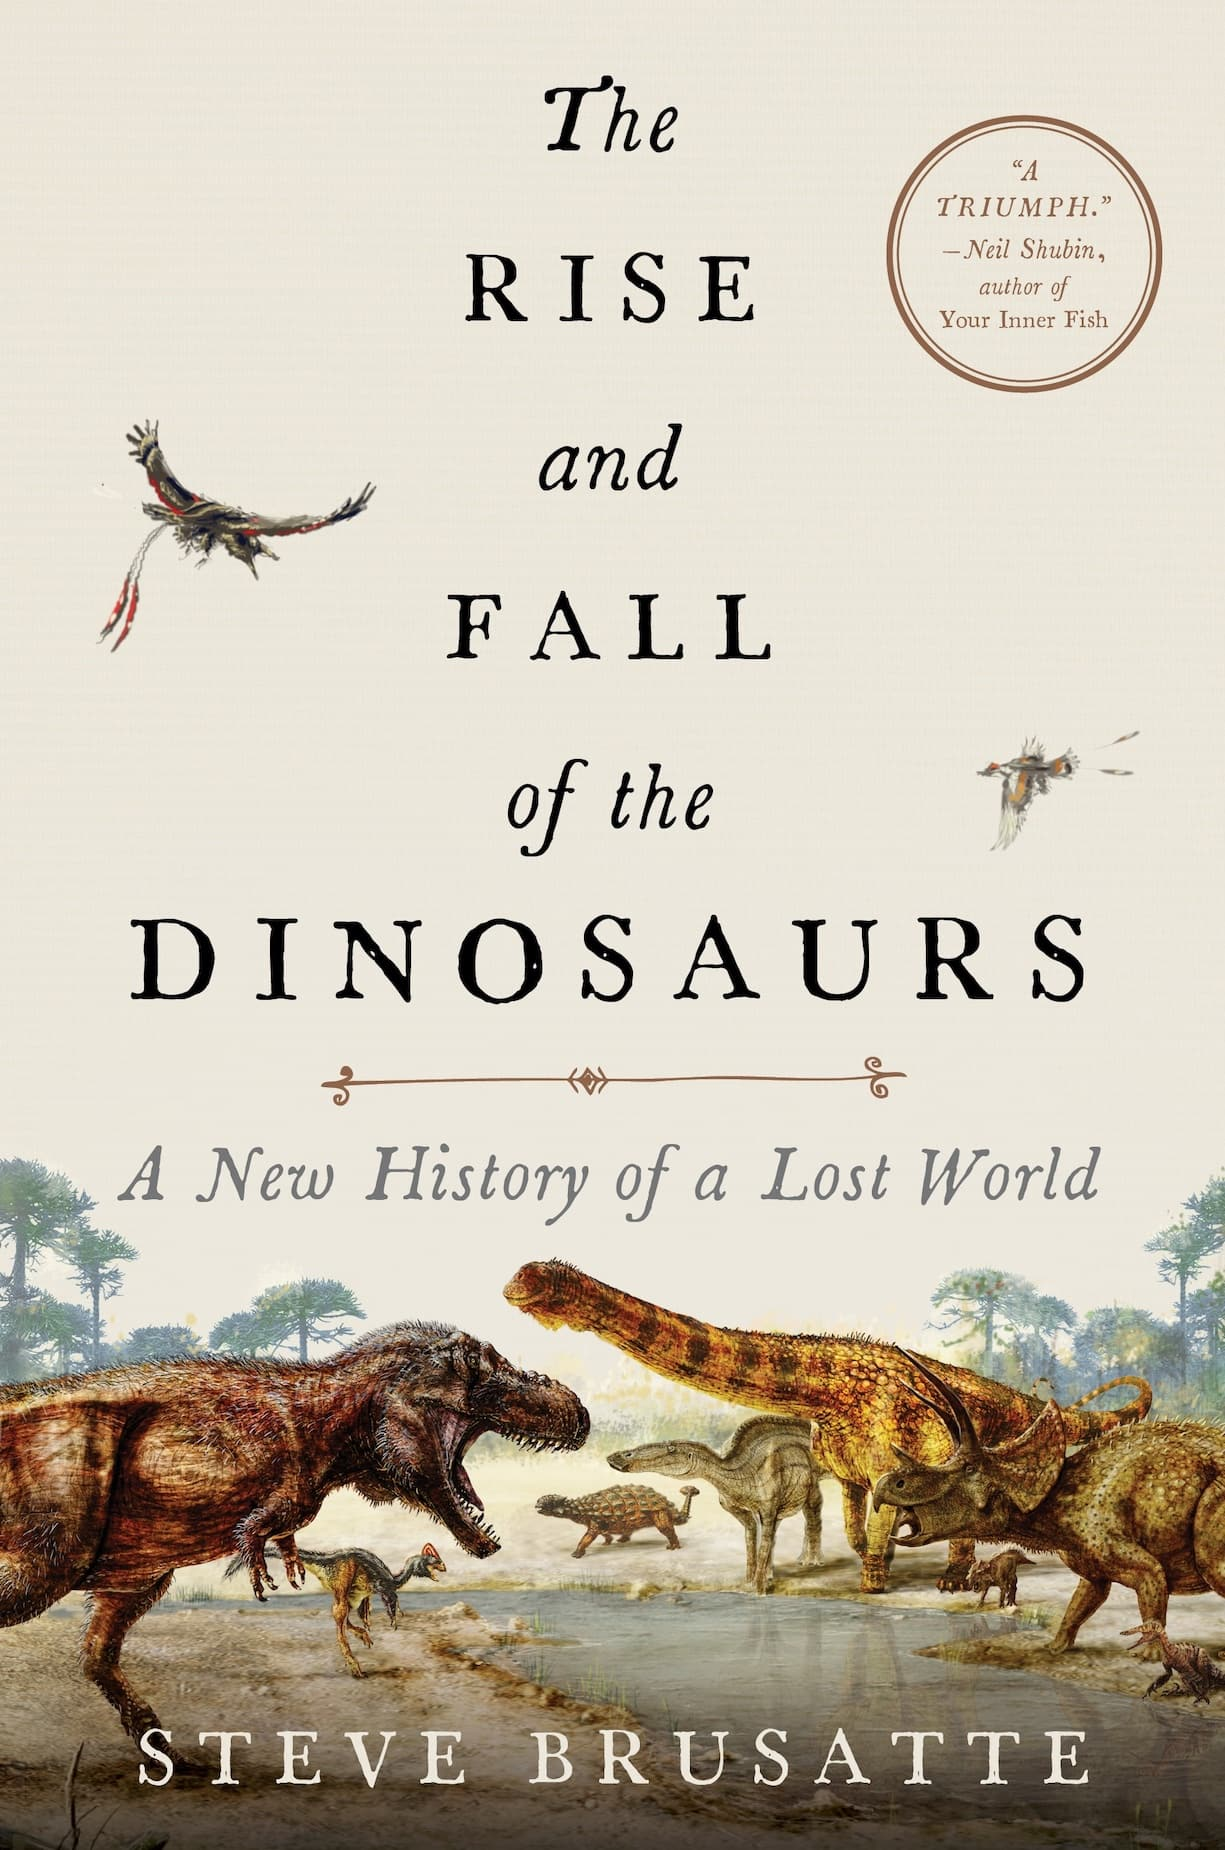 Paleontologist Steve Brusatte's The Rise and Fall of the Dinosaurs: A New History of a Lost World was published in 2018